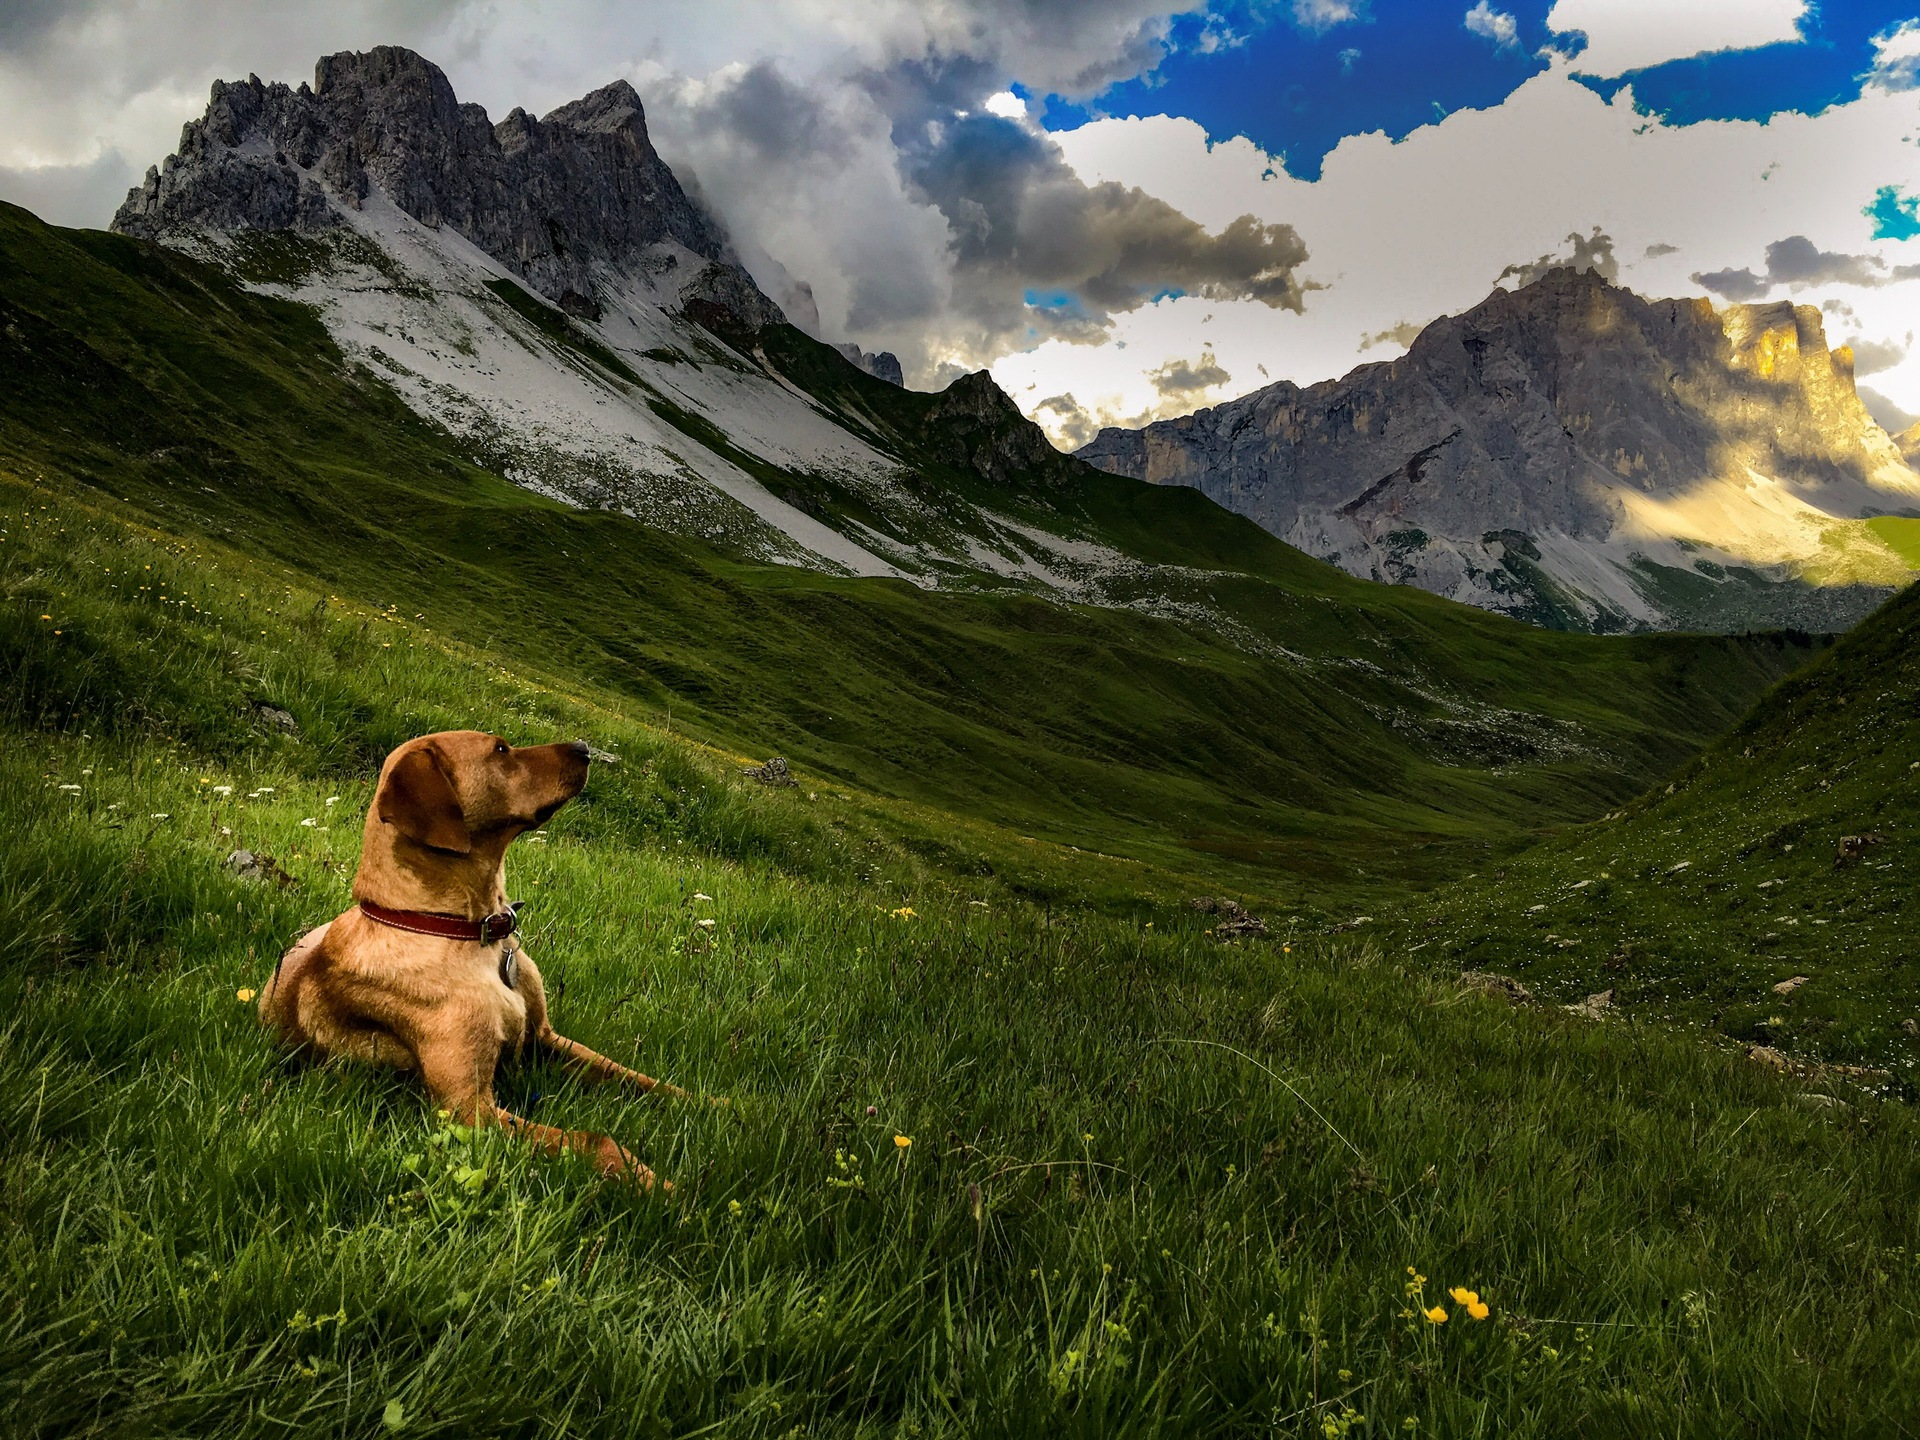 dog in front of a tent in the mountains.